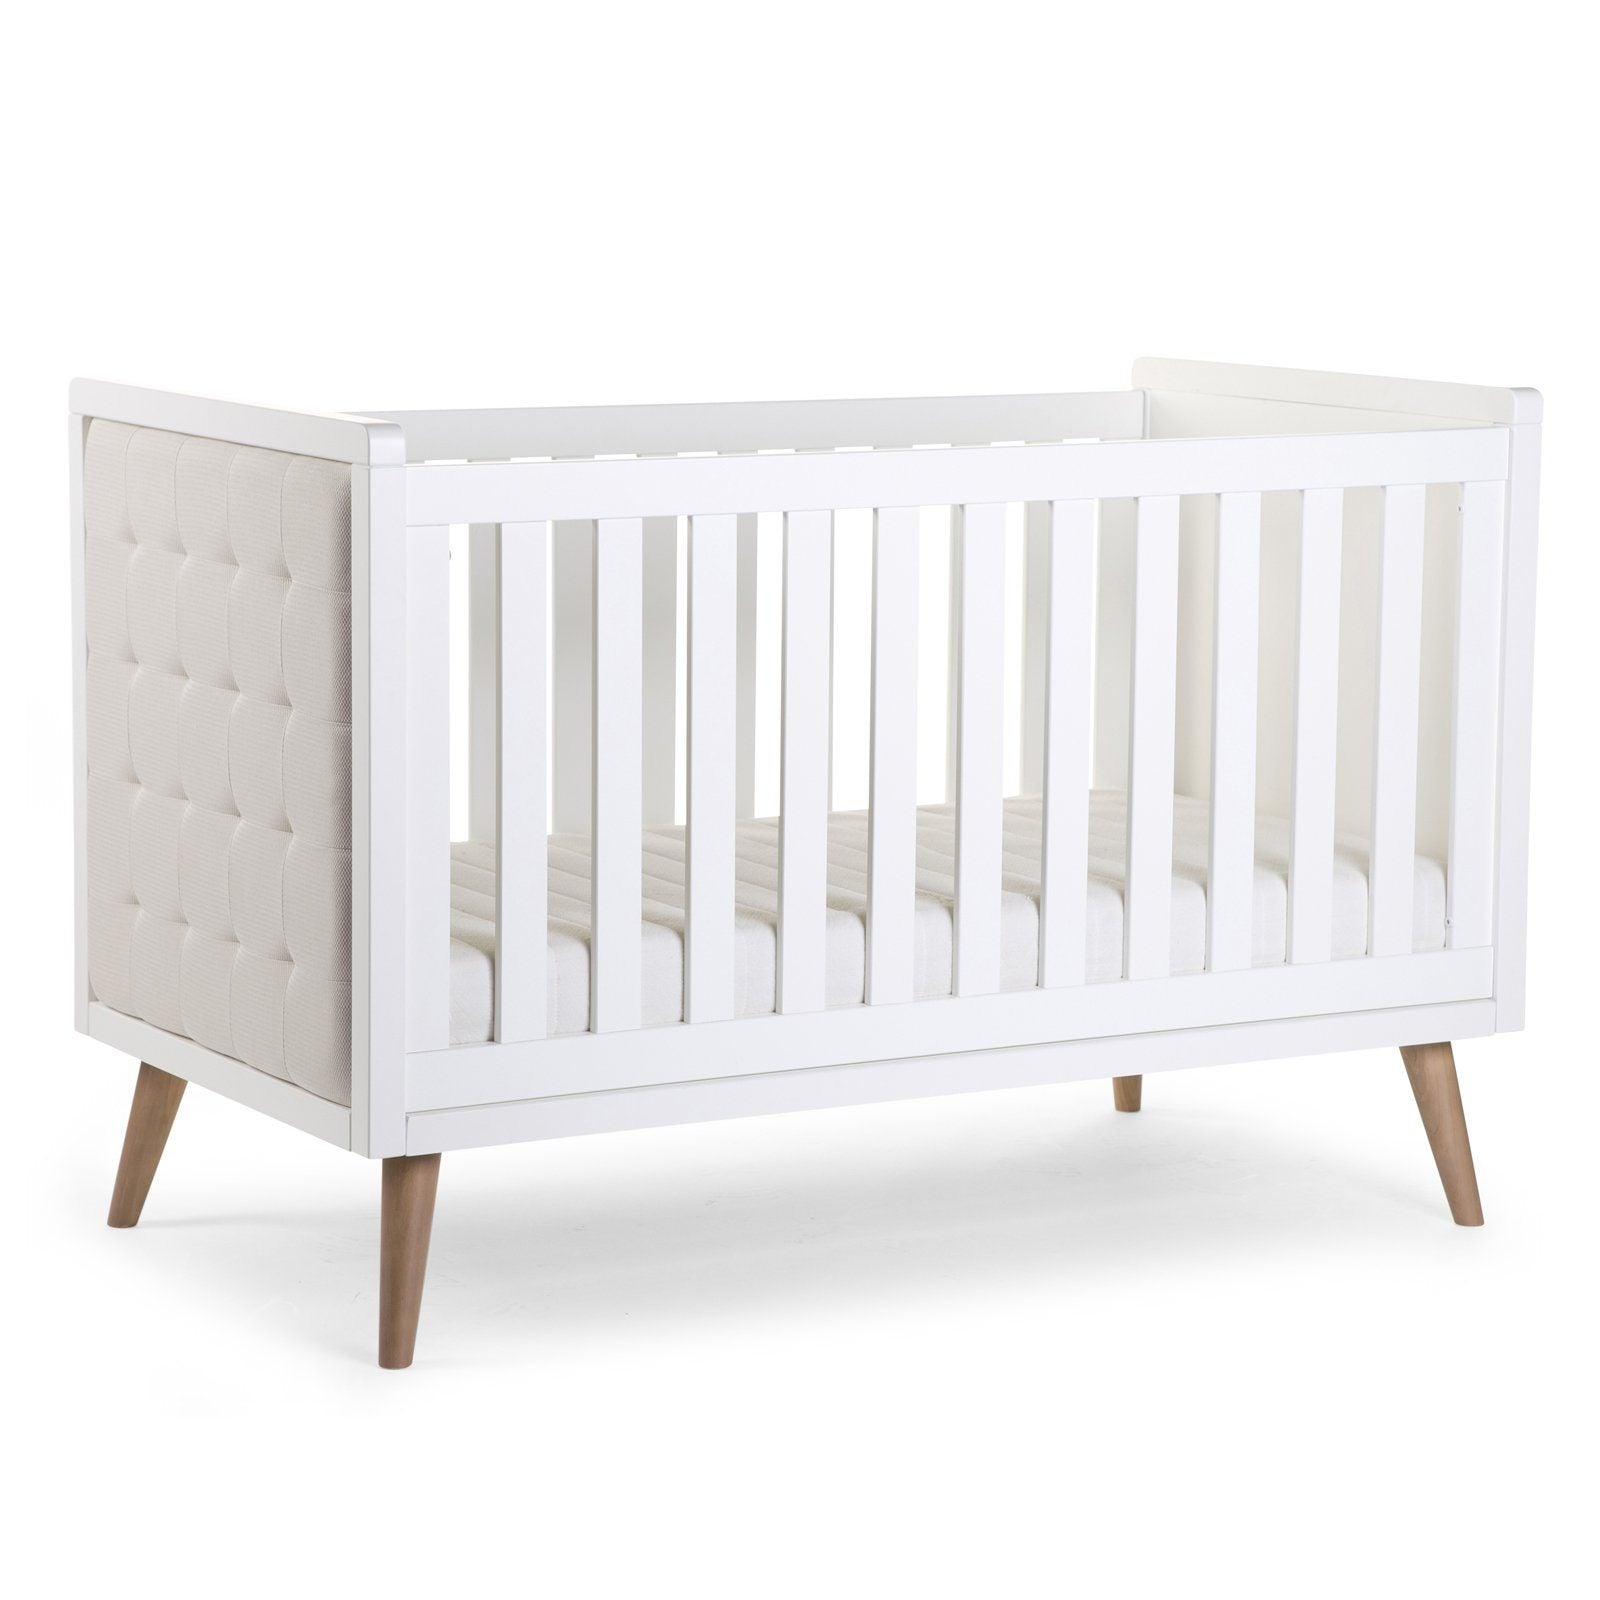 RETRO RIO WHITE COT BED 70x140cm + SLATS Furniture Childhome